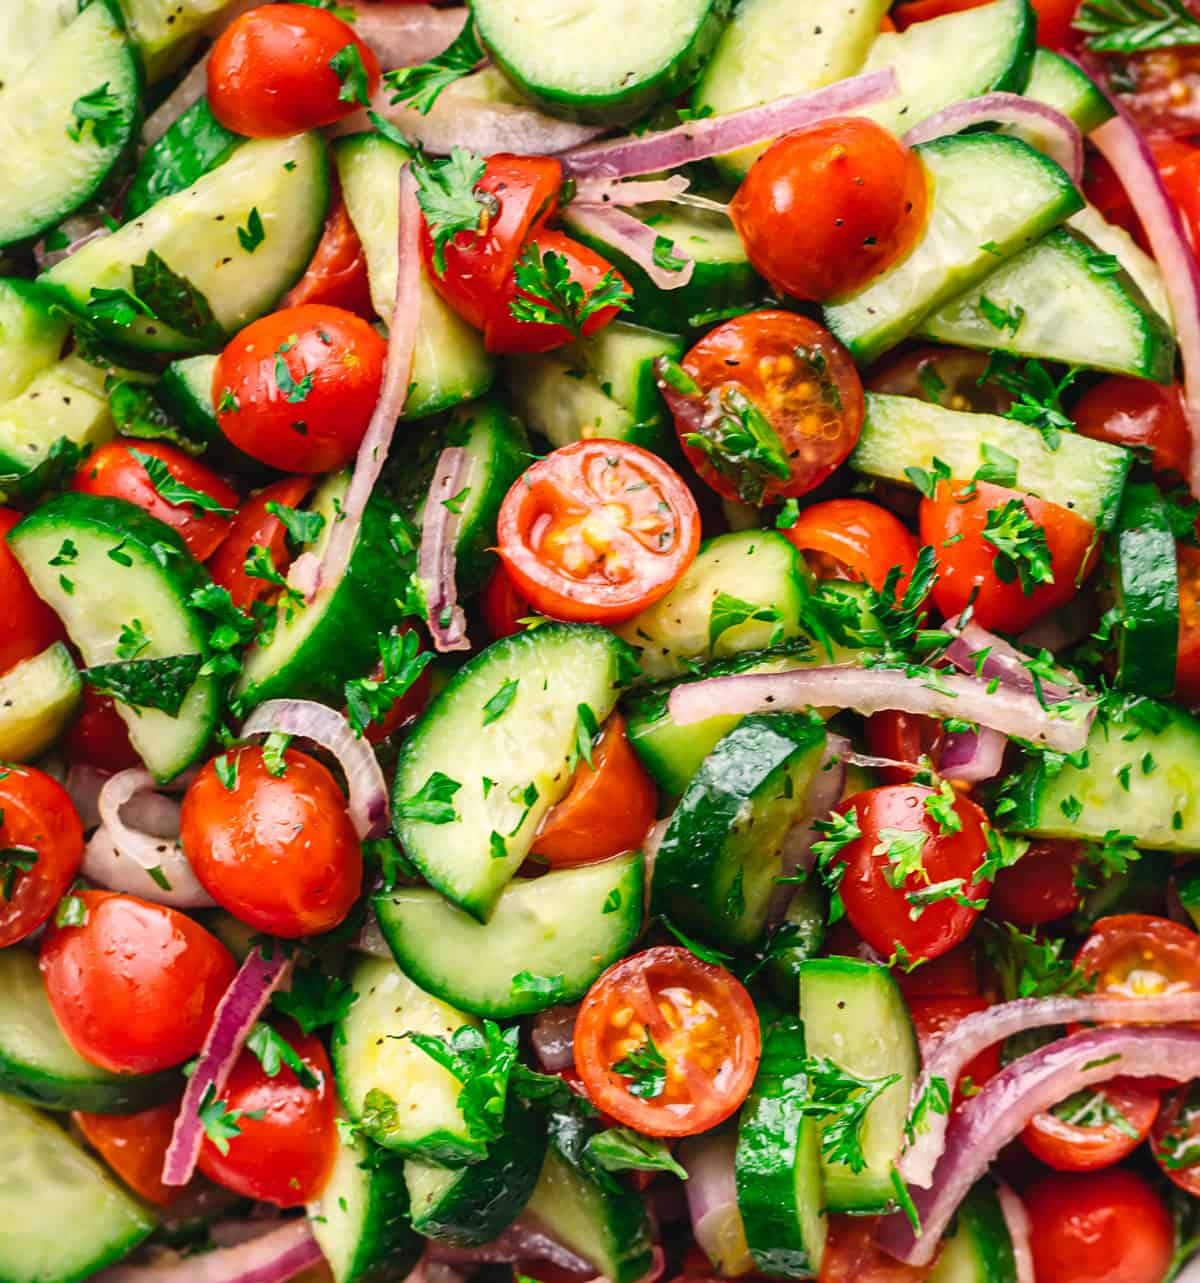 Tomato Cucumber Salad with Easy Ingredients